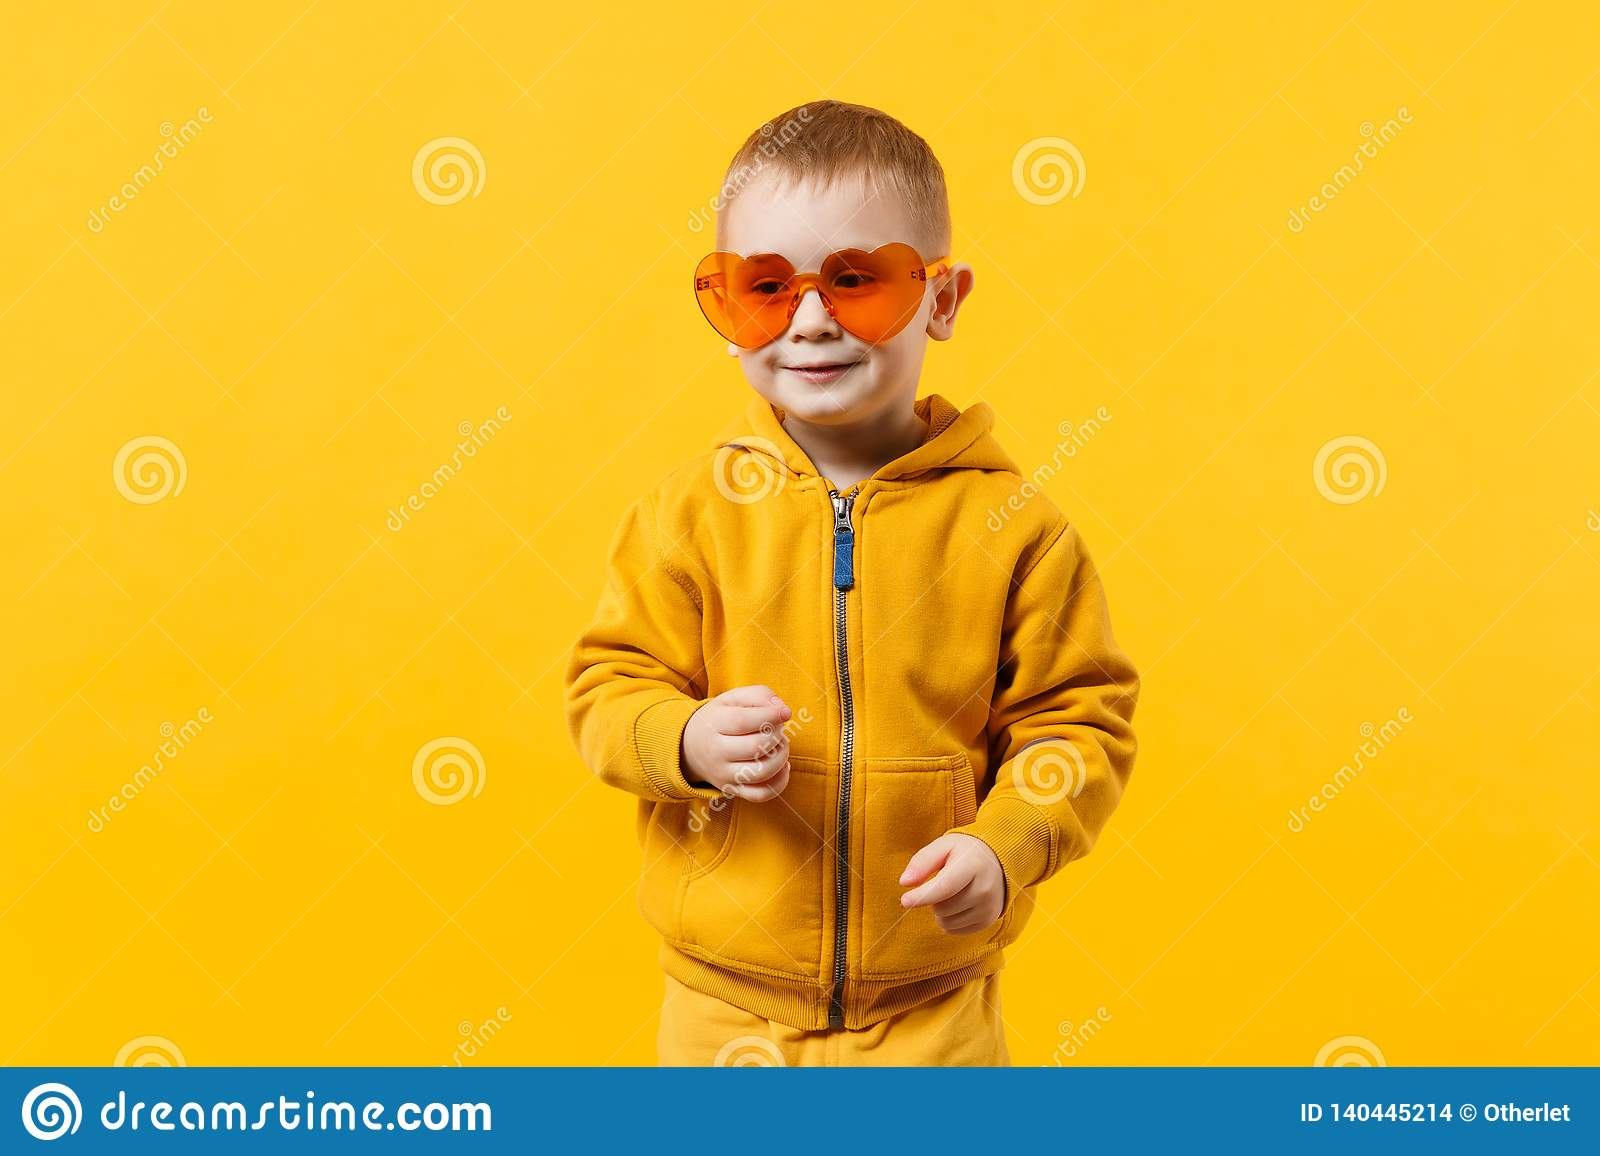 edde9fd67d25 Little cute kid boy 3-4 years old wearing yellow clothes isolated on bright  orange